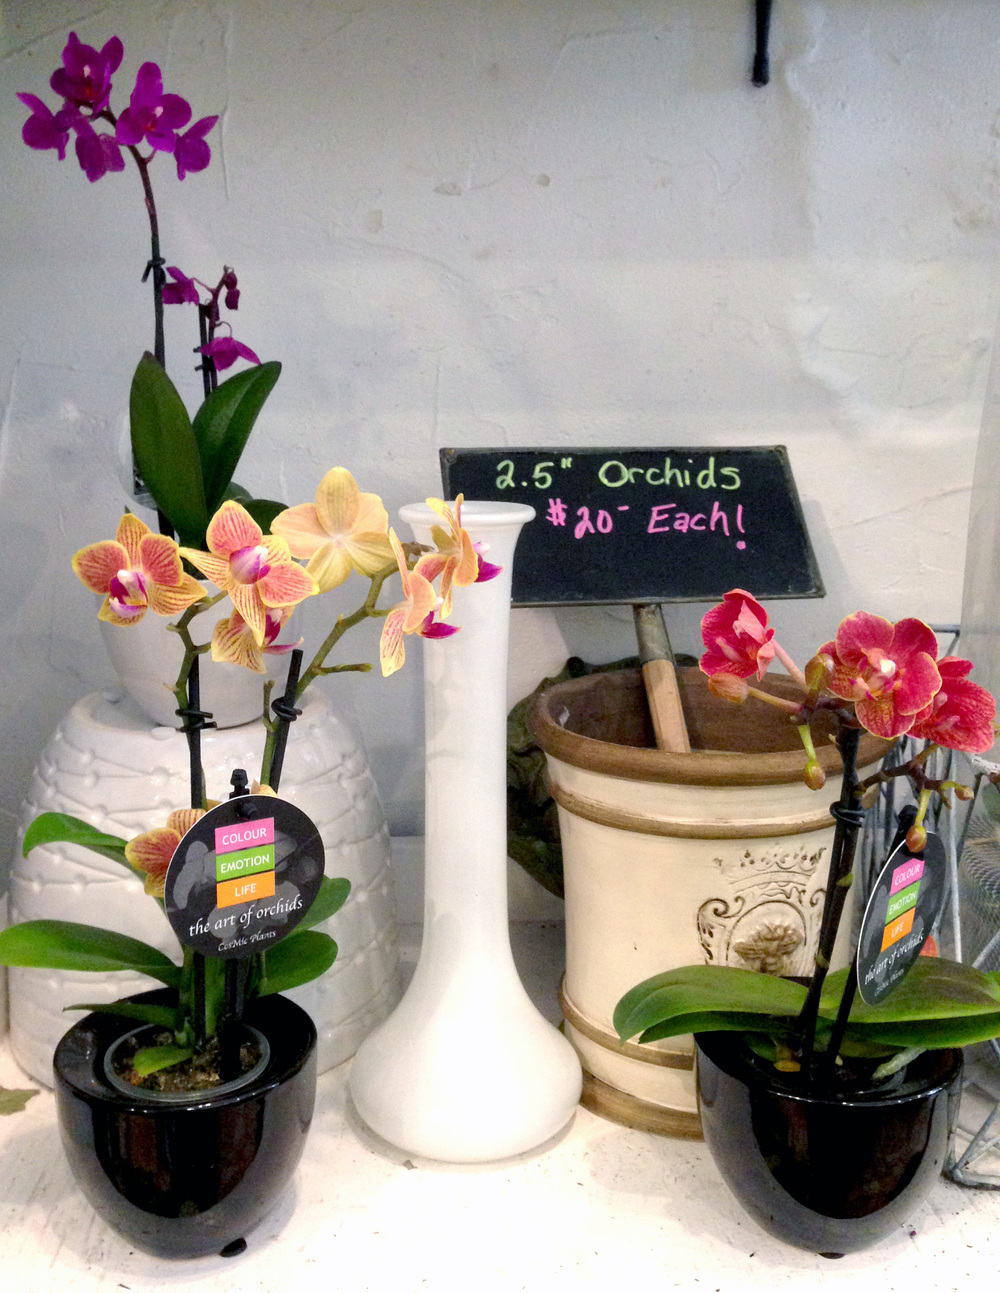 Orchids are becoming popular choices for any occasion! You can find them here in many different sizes